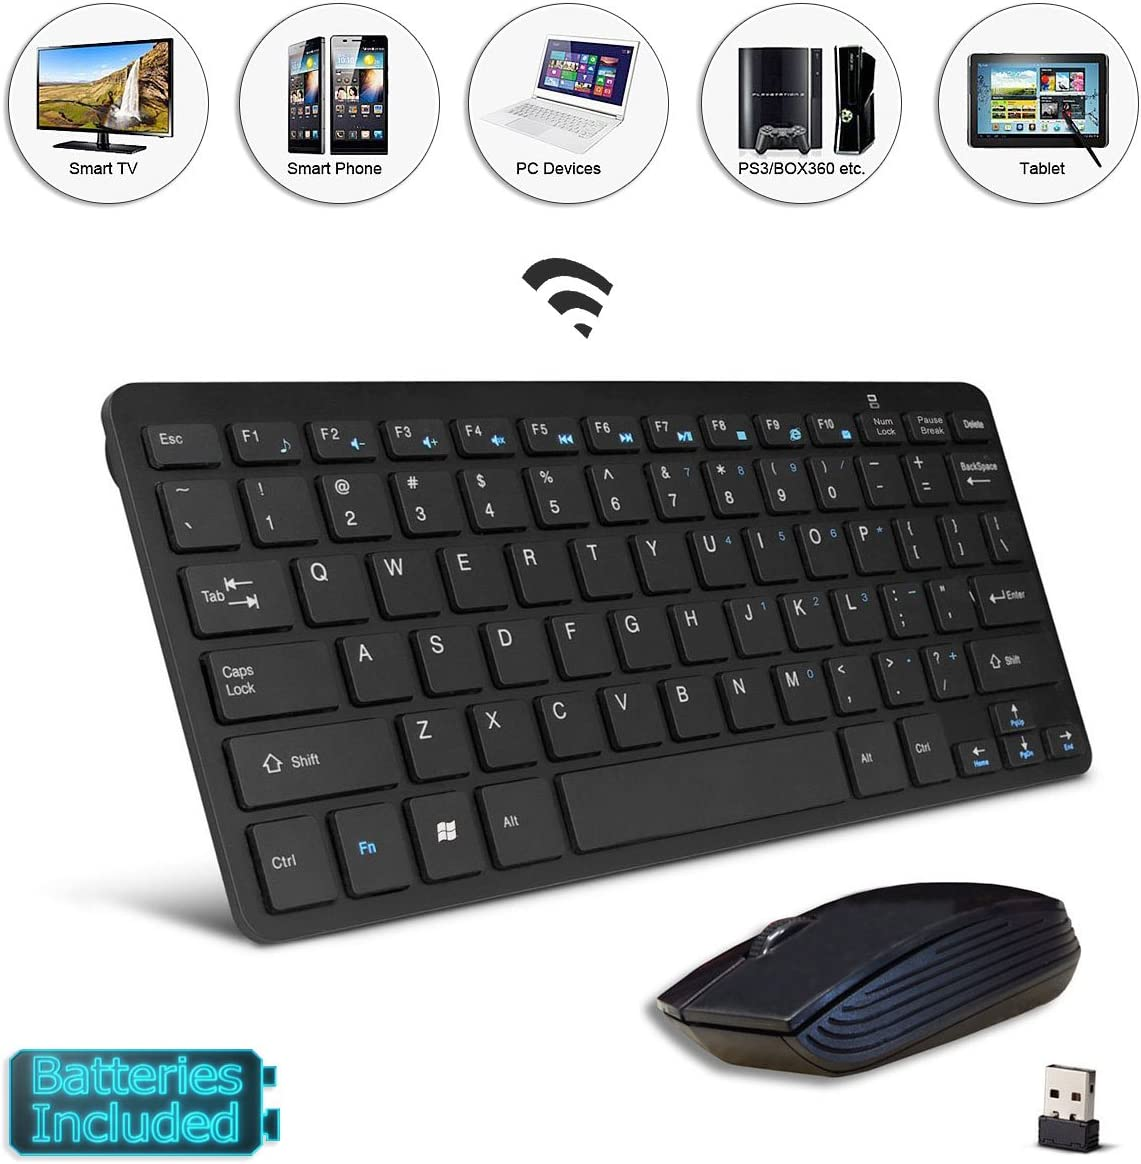 "Remote Control for YouTube Browser for PANASONIC/ TX-55GZ950B 55/"" Black Wireless Mini Keyboard /& Mouse Easy Control"